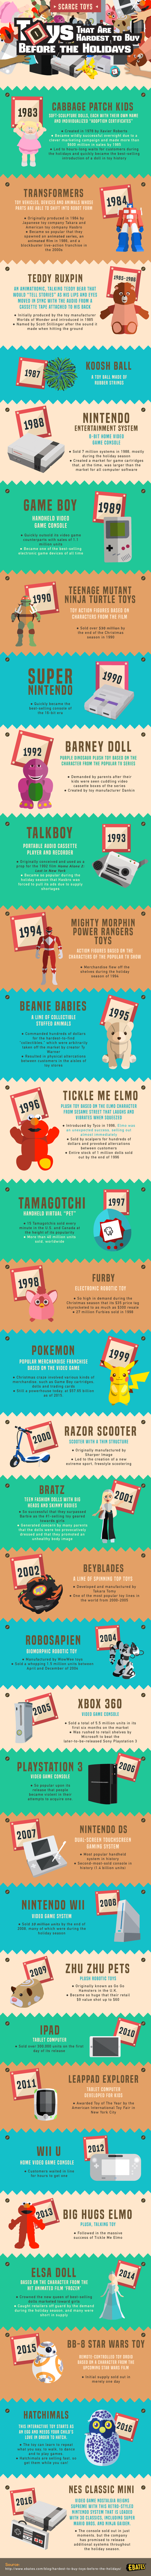 Infographic: The Most Popular Toys Through the Decades